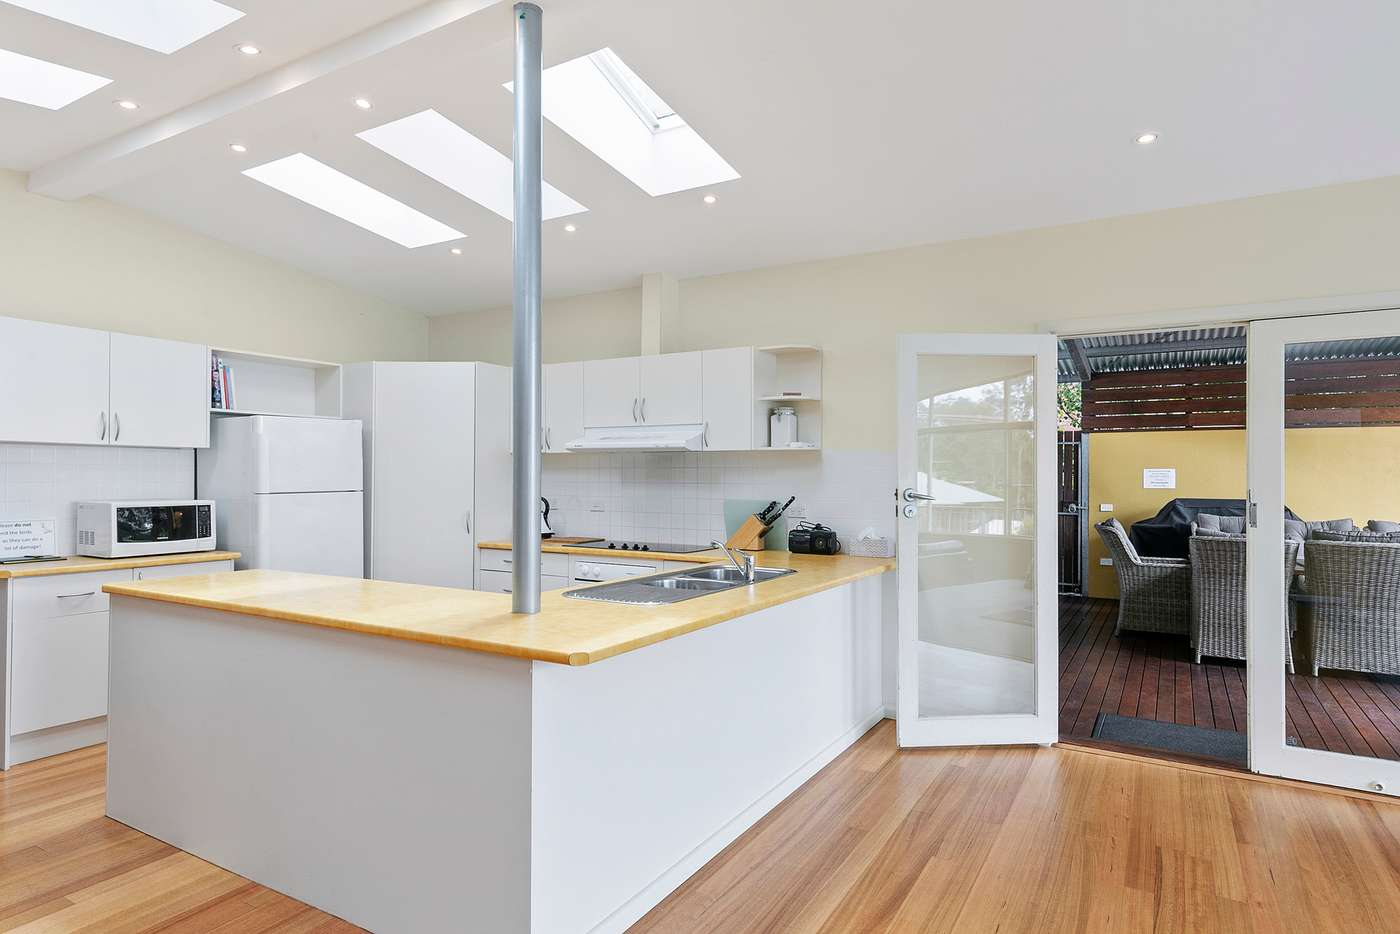 Fifth view of Homely house listing, 23 Belvedere Terrace, Lorne VIC 3232